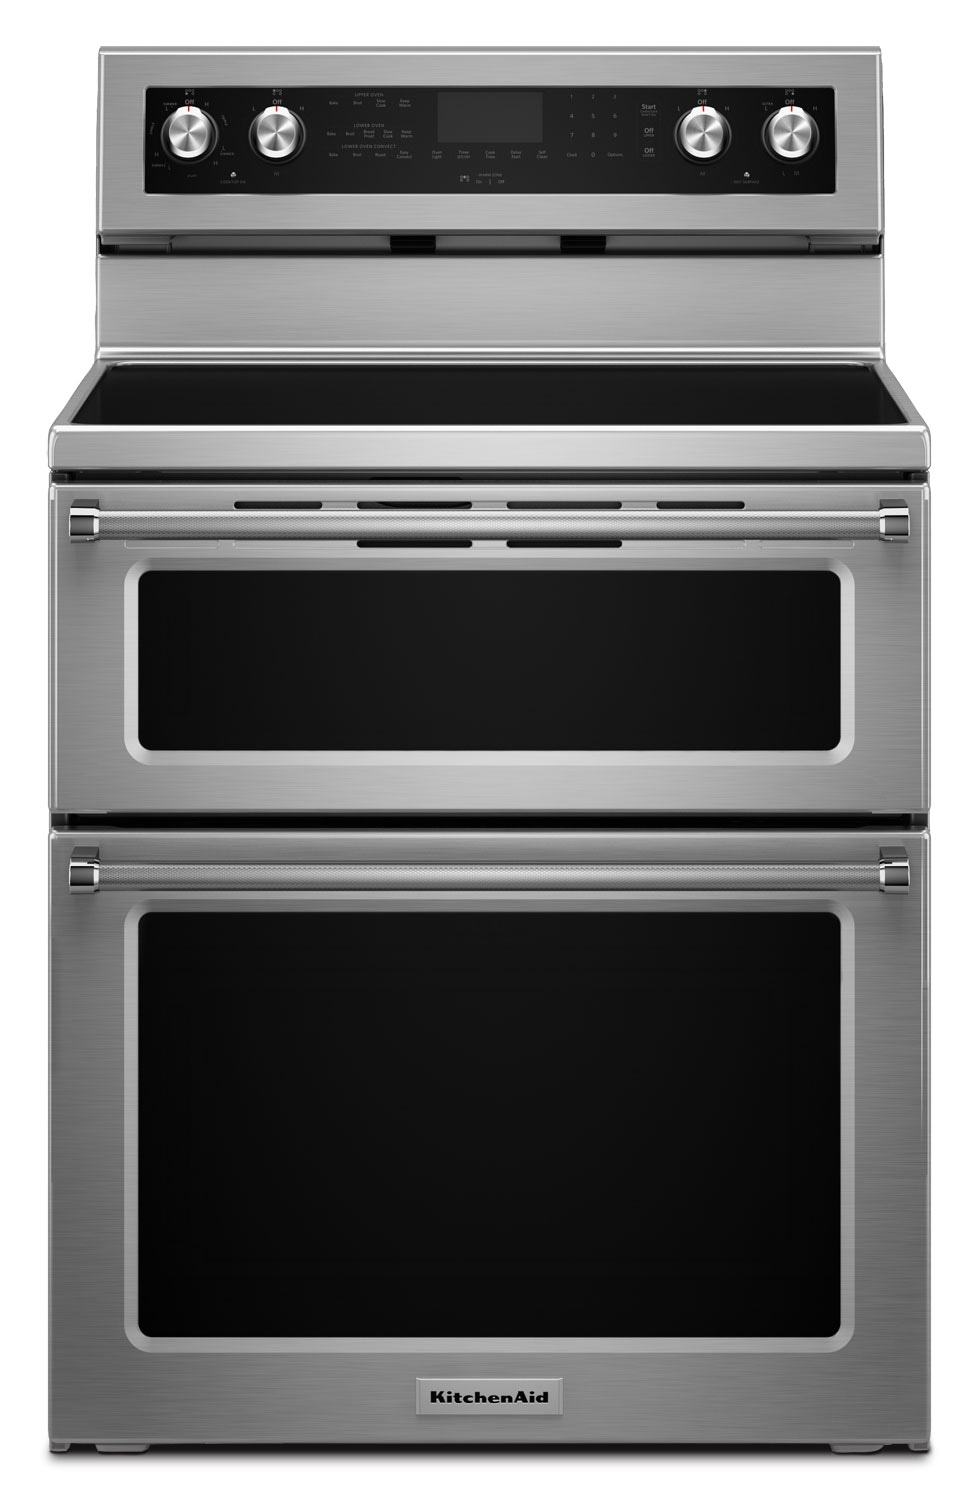 "KitchenAid 30"" Electric Double Oven Convection Range"